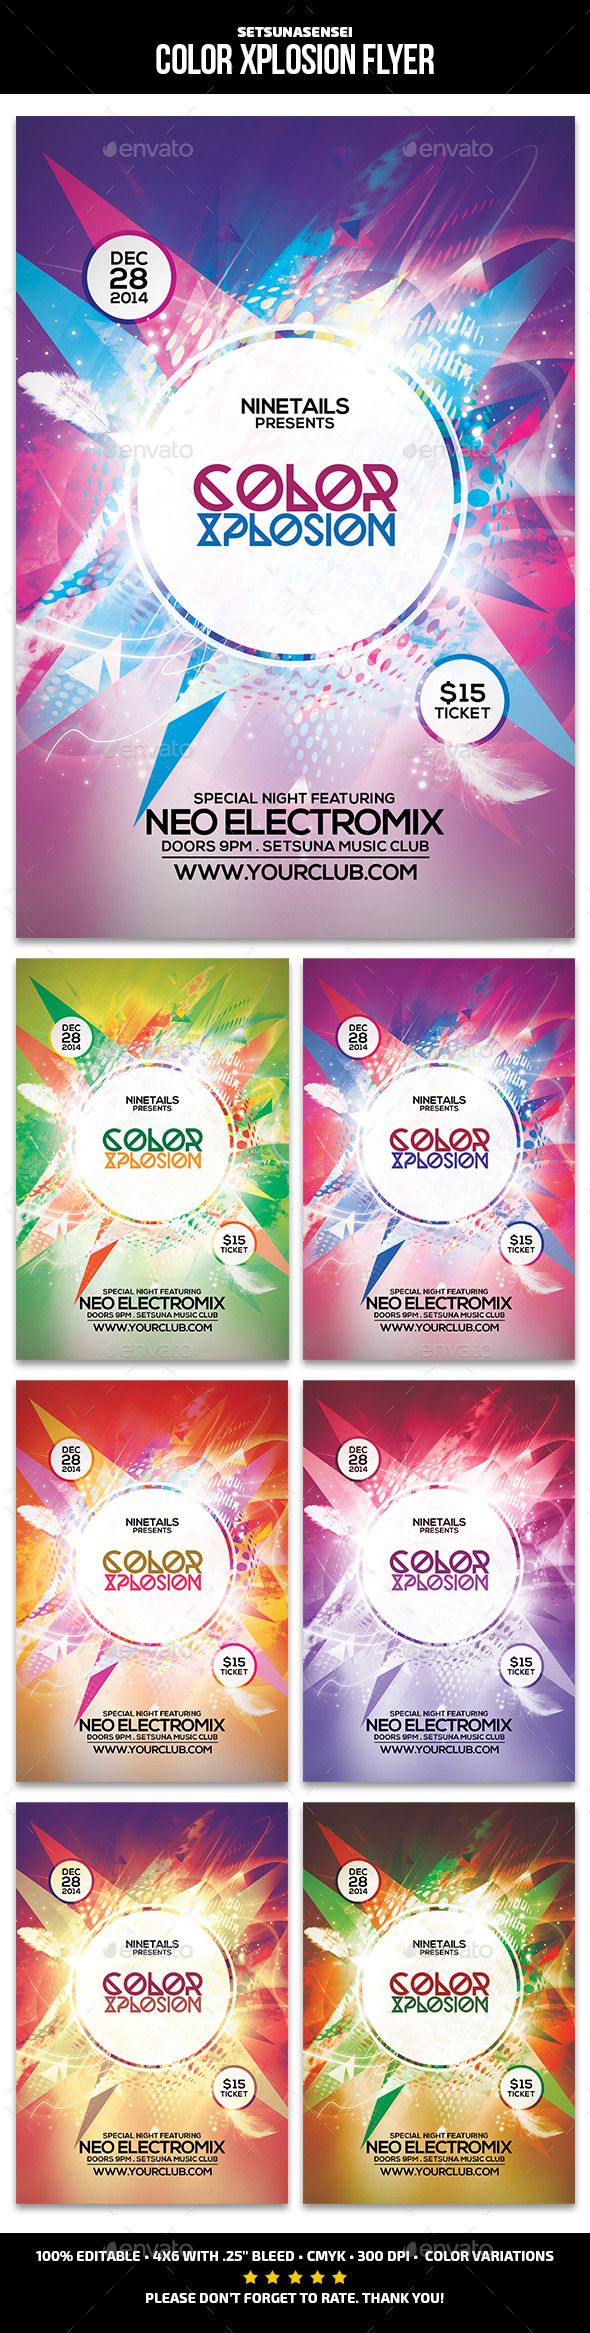 GraphicRiver Color Xplosion Flyer 9869900